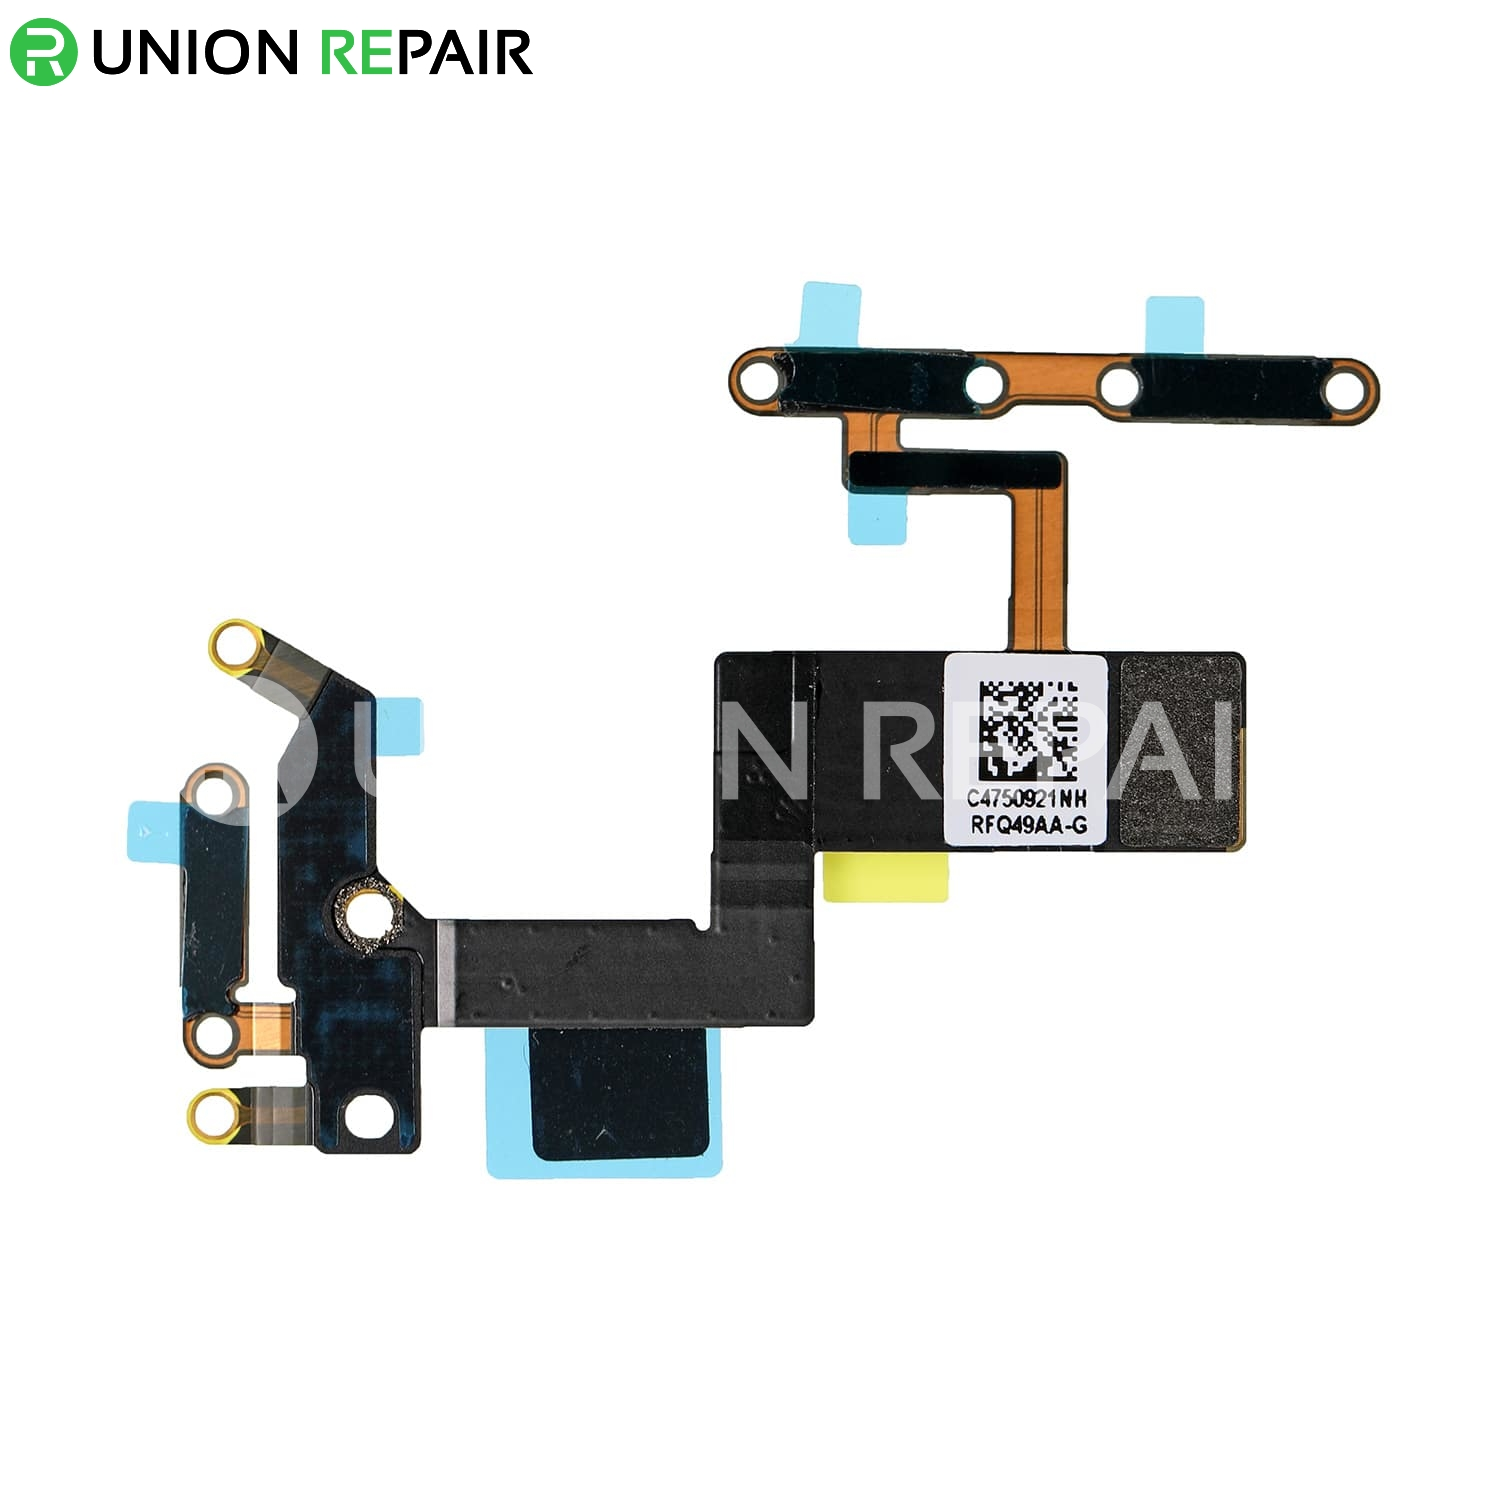 "Replacement for iPad Pro 12.9"" 3rd Gen Power Button/Volume Button Flex Cable"